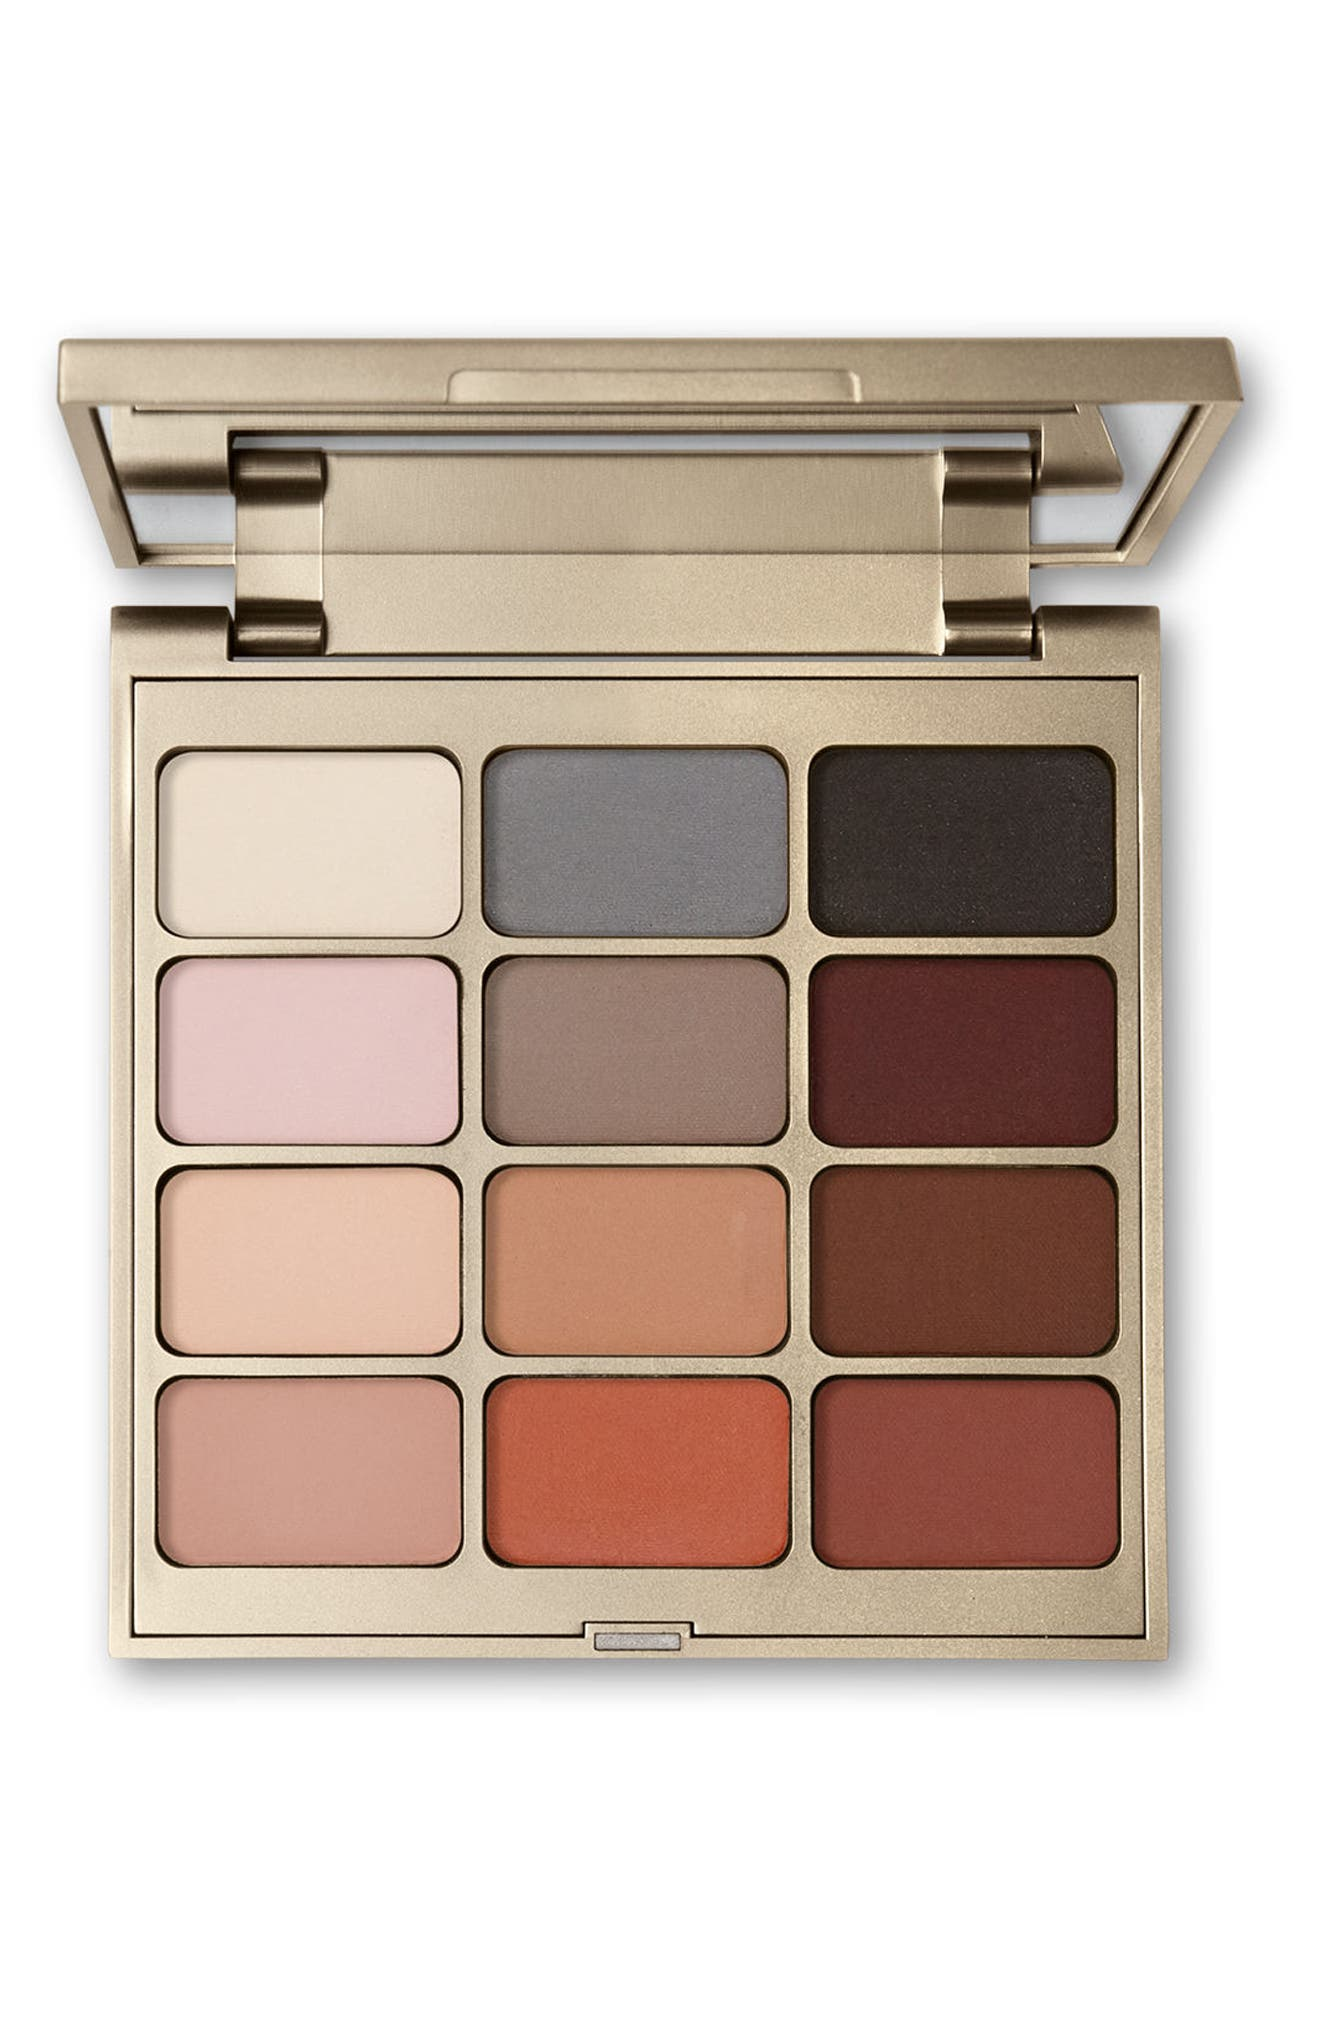 Stila Eyes Are the Window™ Mind Eyeshadow Palette